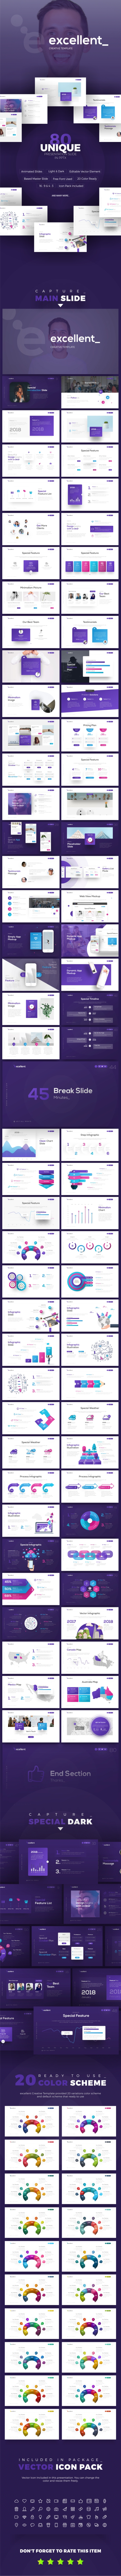 Excellent Creative Template - Business PowerPoint Templates